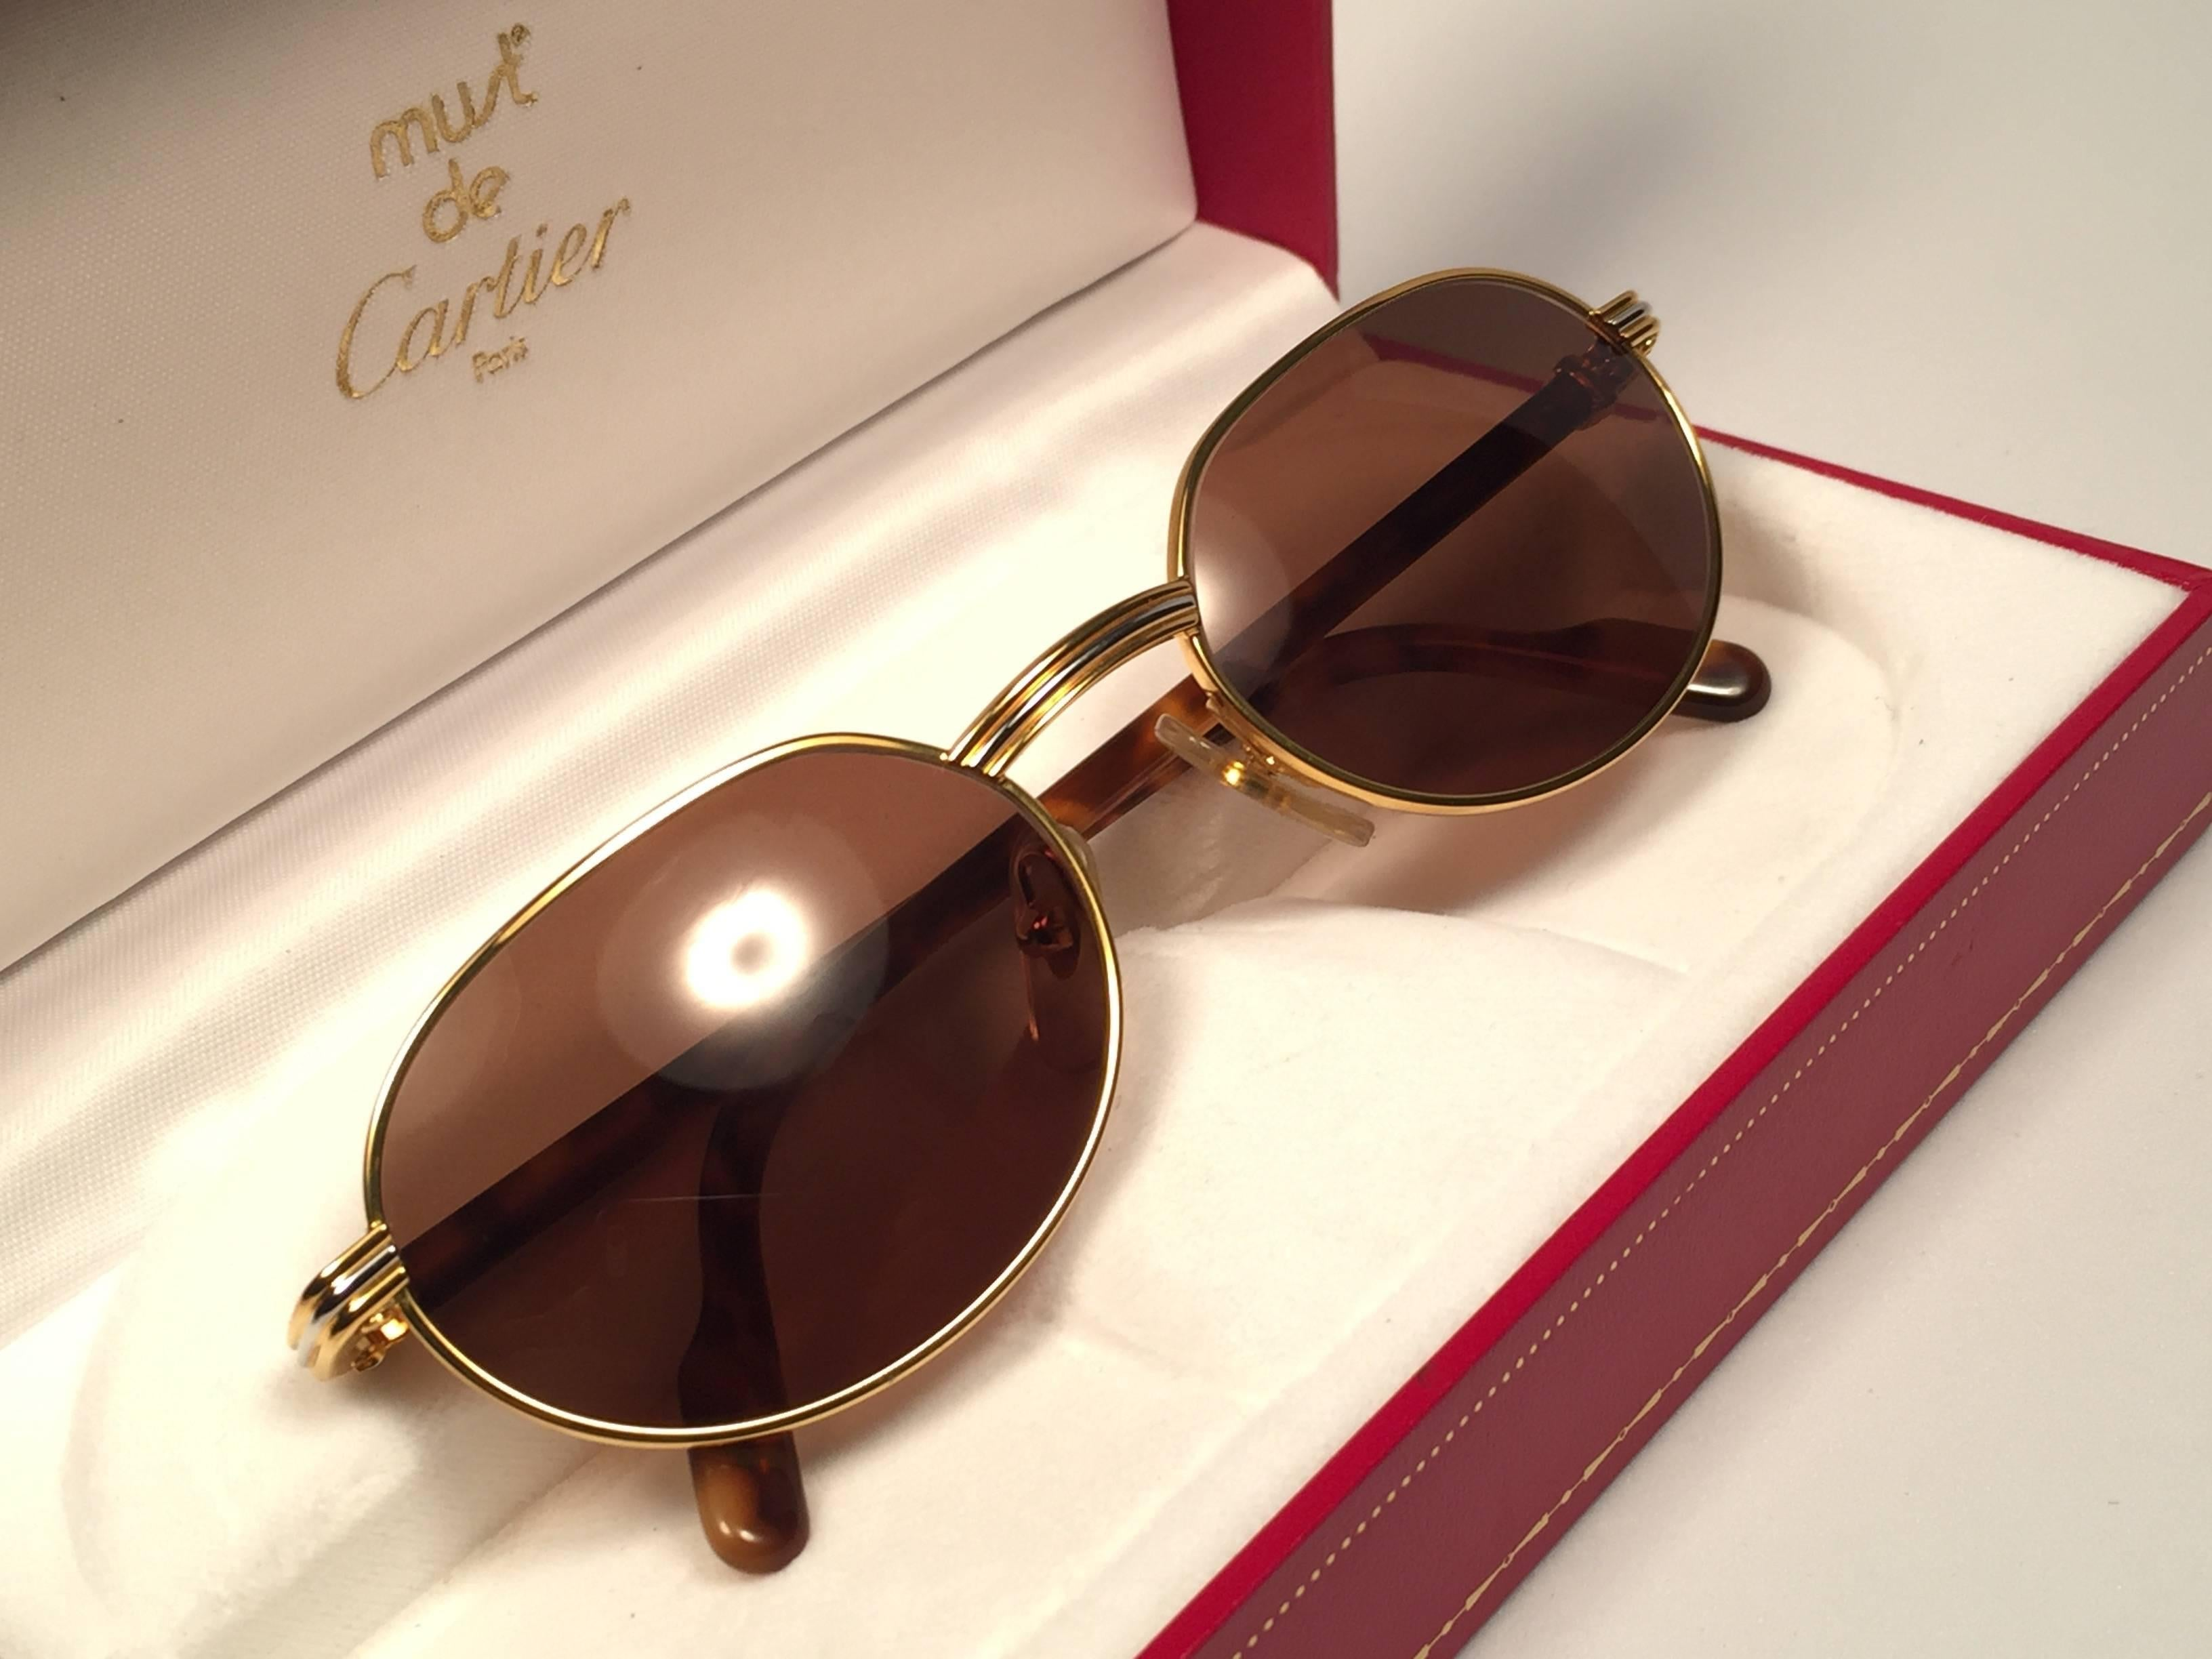 3e8008ecc13 New Cartier Classic Oval Lueur 51mm Gold Plated Sunglasses Made in France  at 1stdibs